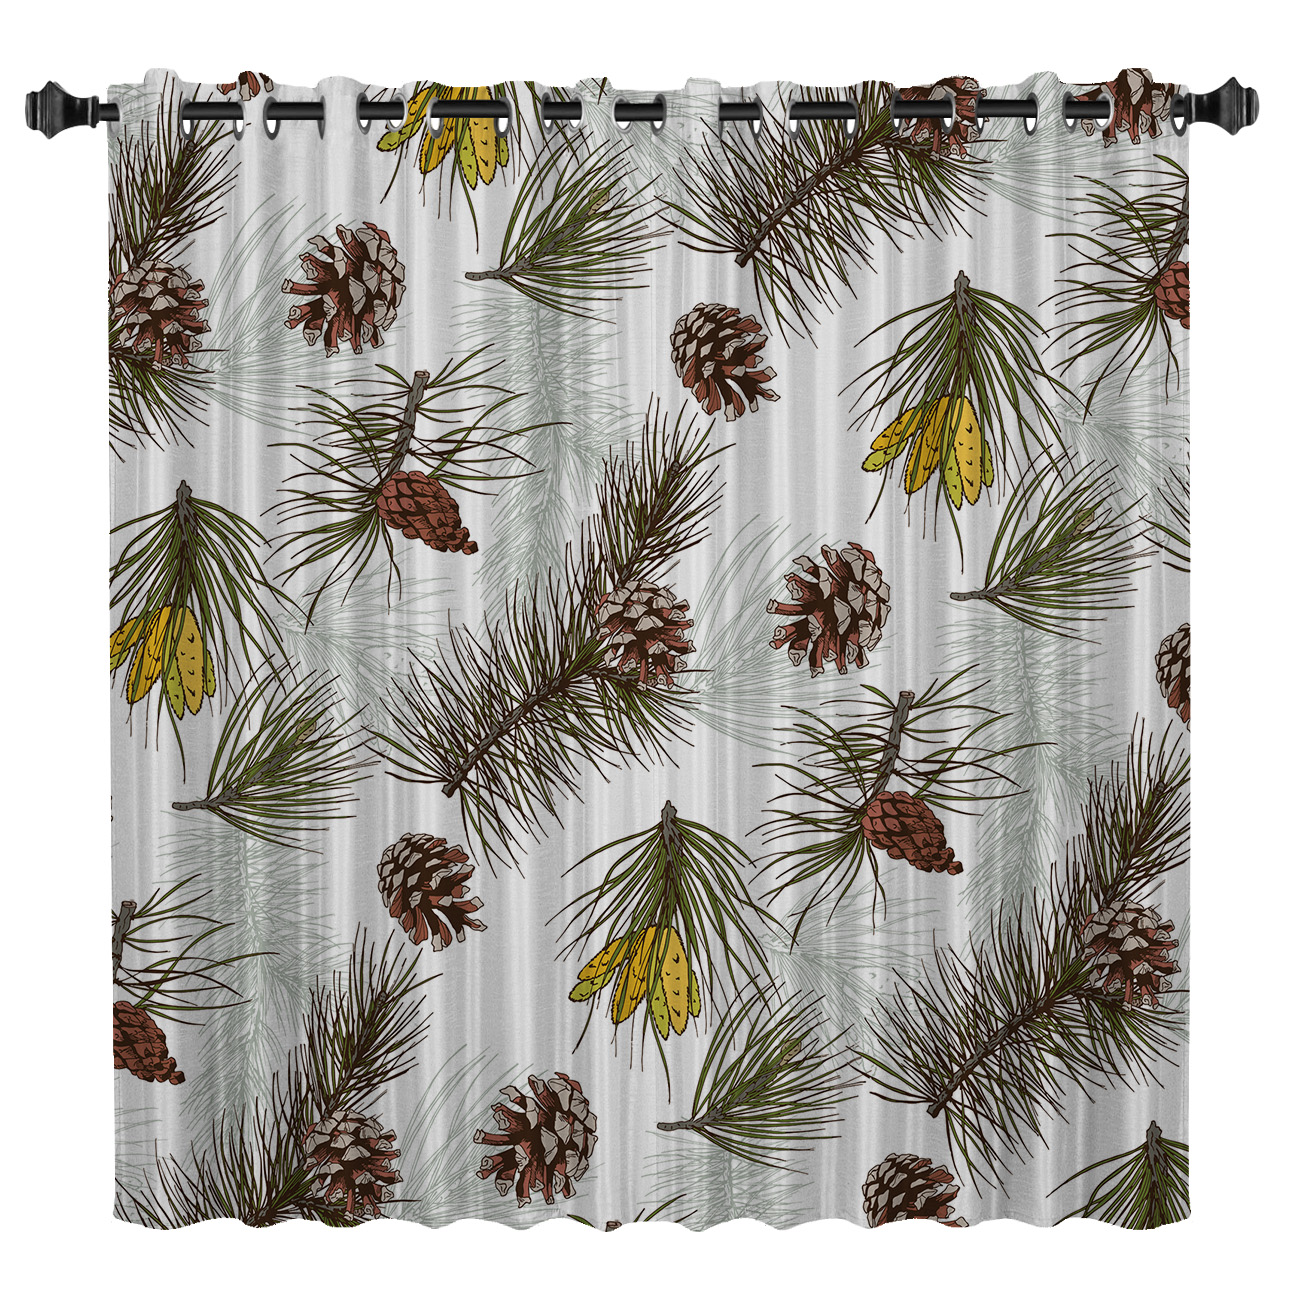 Pine Cone Merry Christams Room Curtains Large Window Window Blinds Living Room Outdoor Drapes Decor Kids Swag Window Treatment